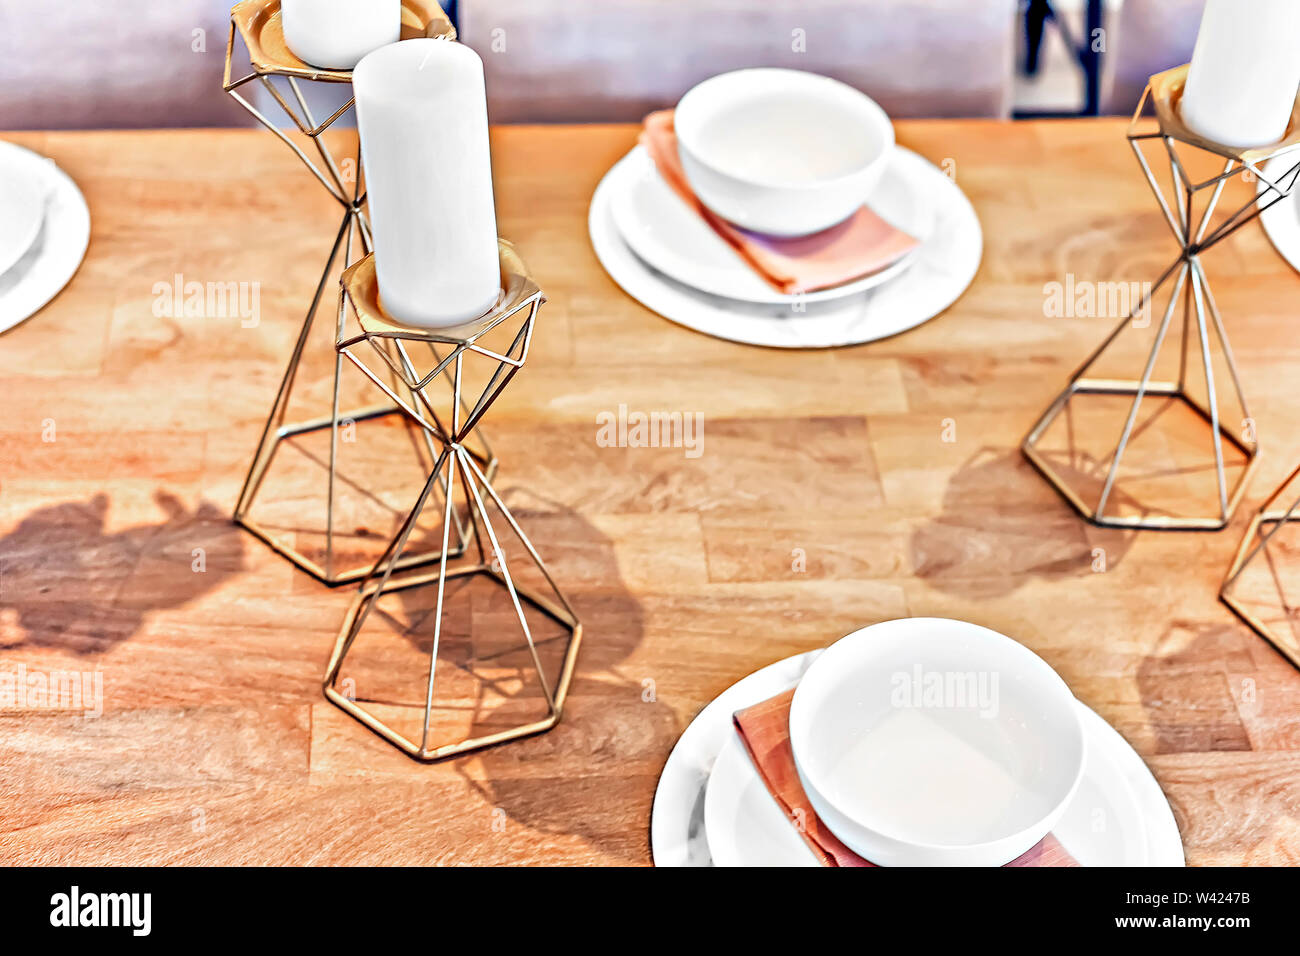 Metal fancy items like gold candelabra on the table with white candles and dining table set up with dishes and mugs. the candle support is like a beve Stock Photo